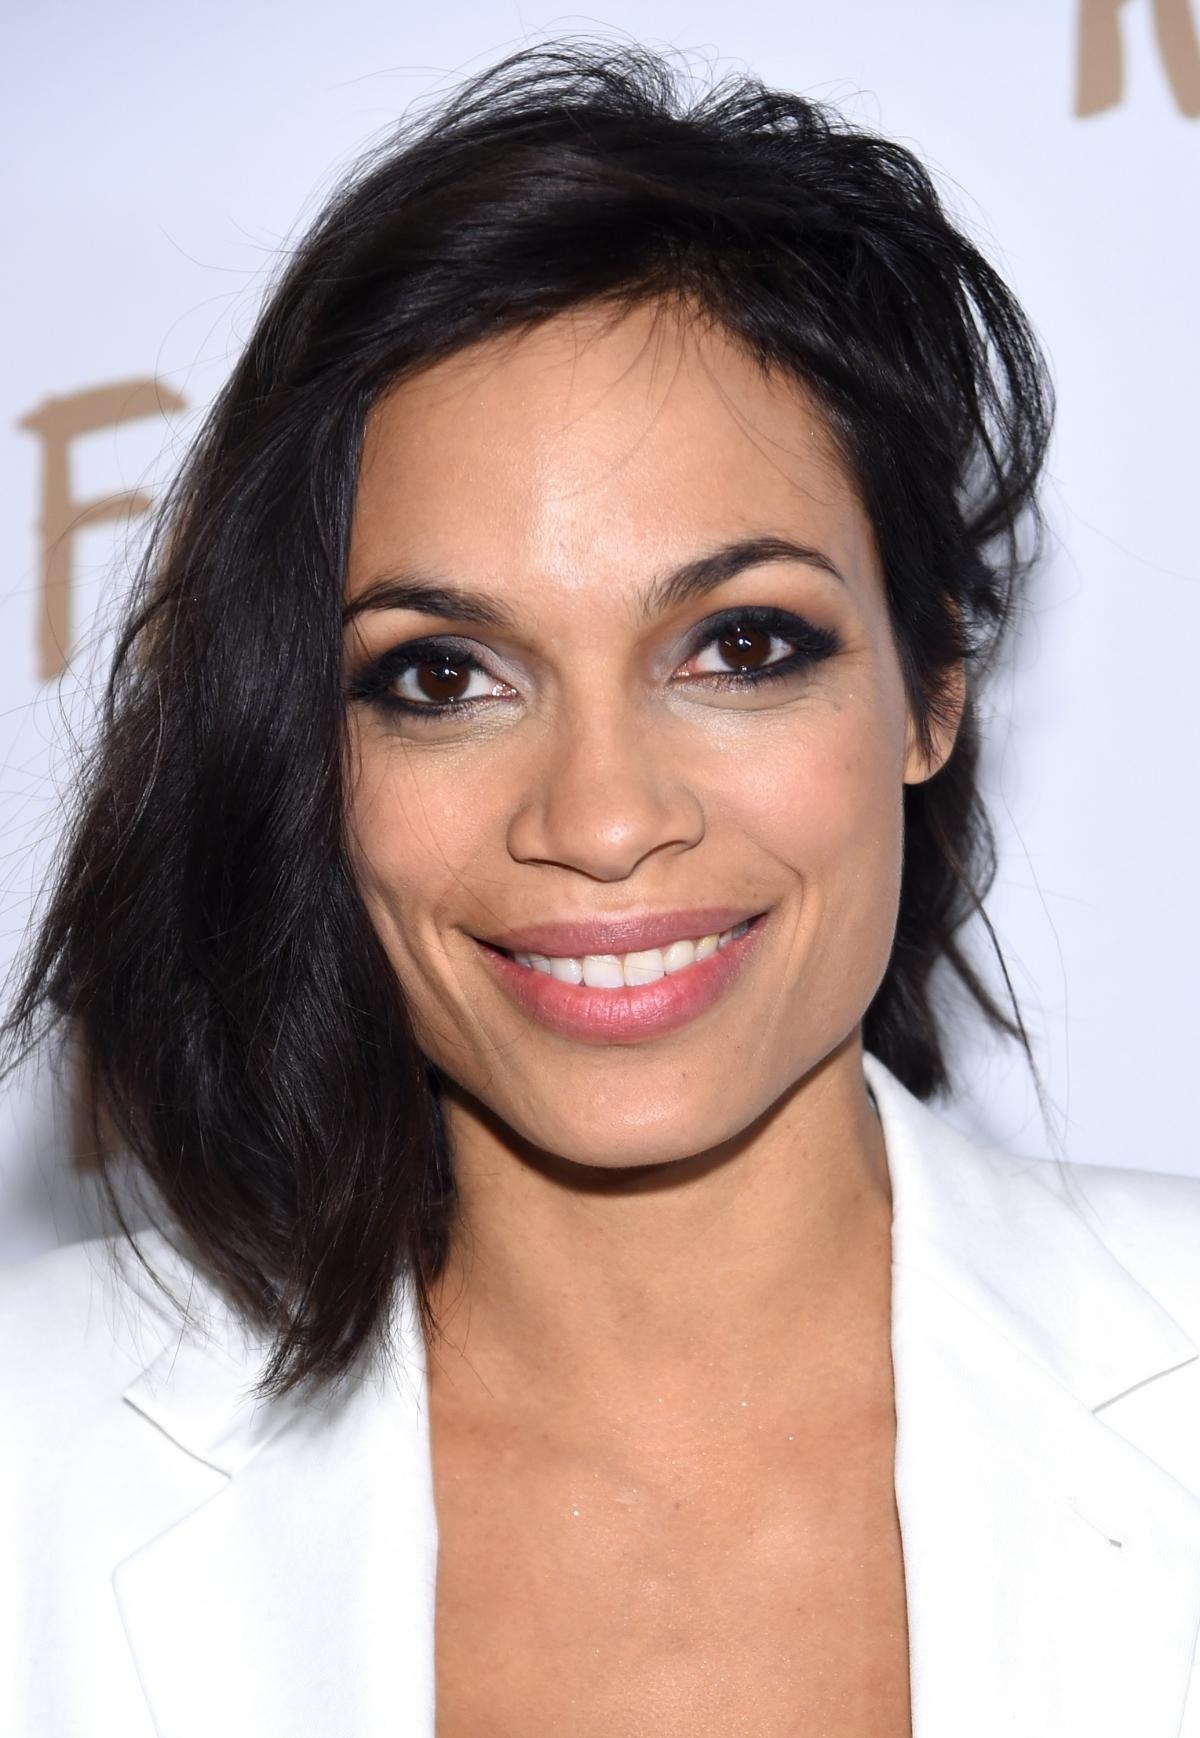 The Lego Batman Movie: Rosario Dawson set to voice Batgirl Rosario Dawson